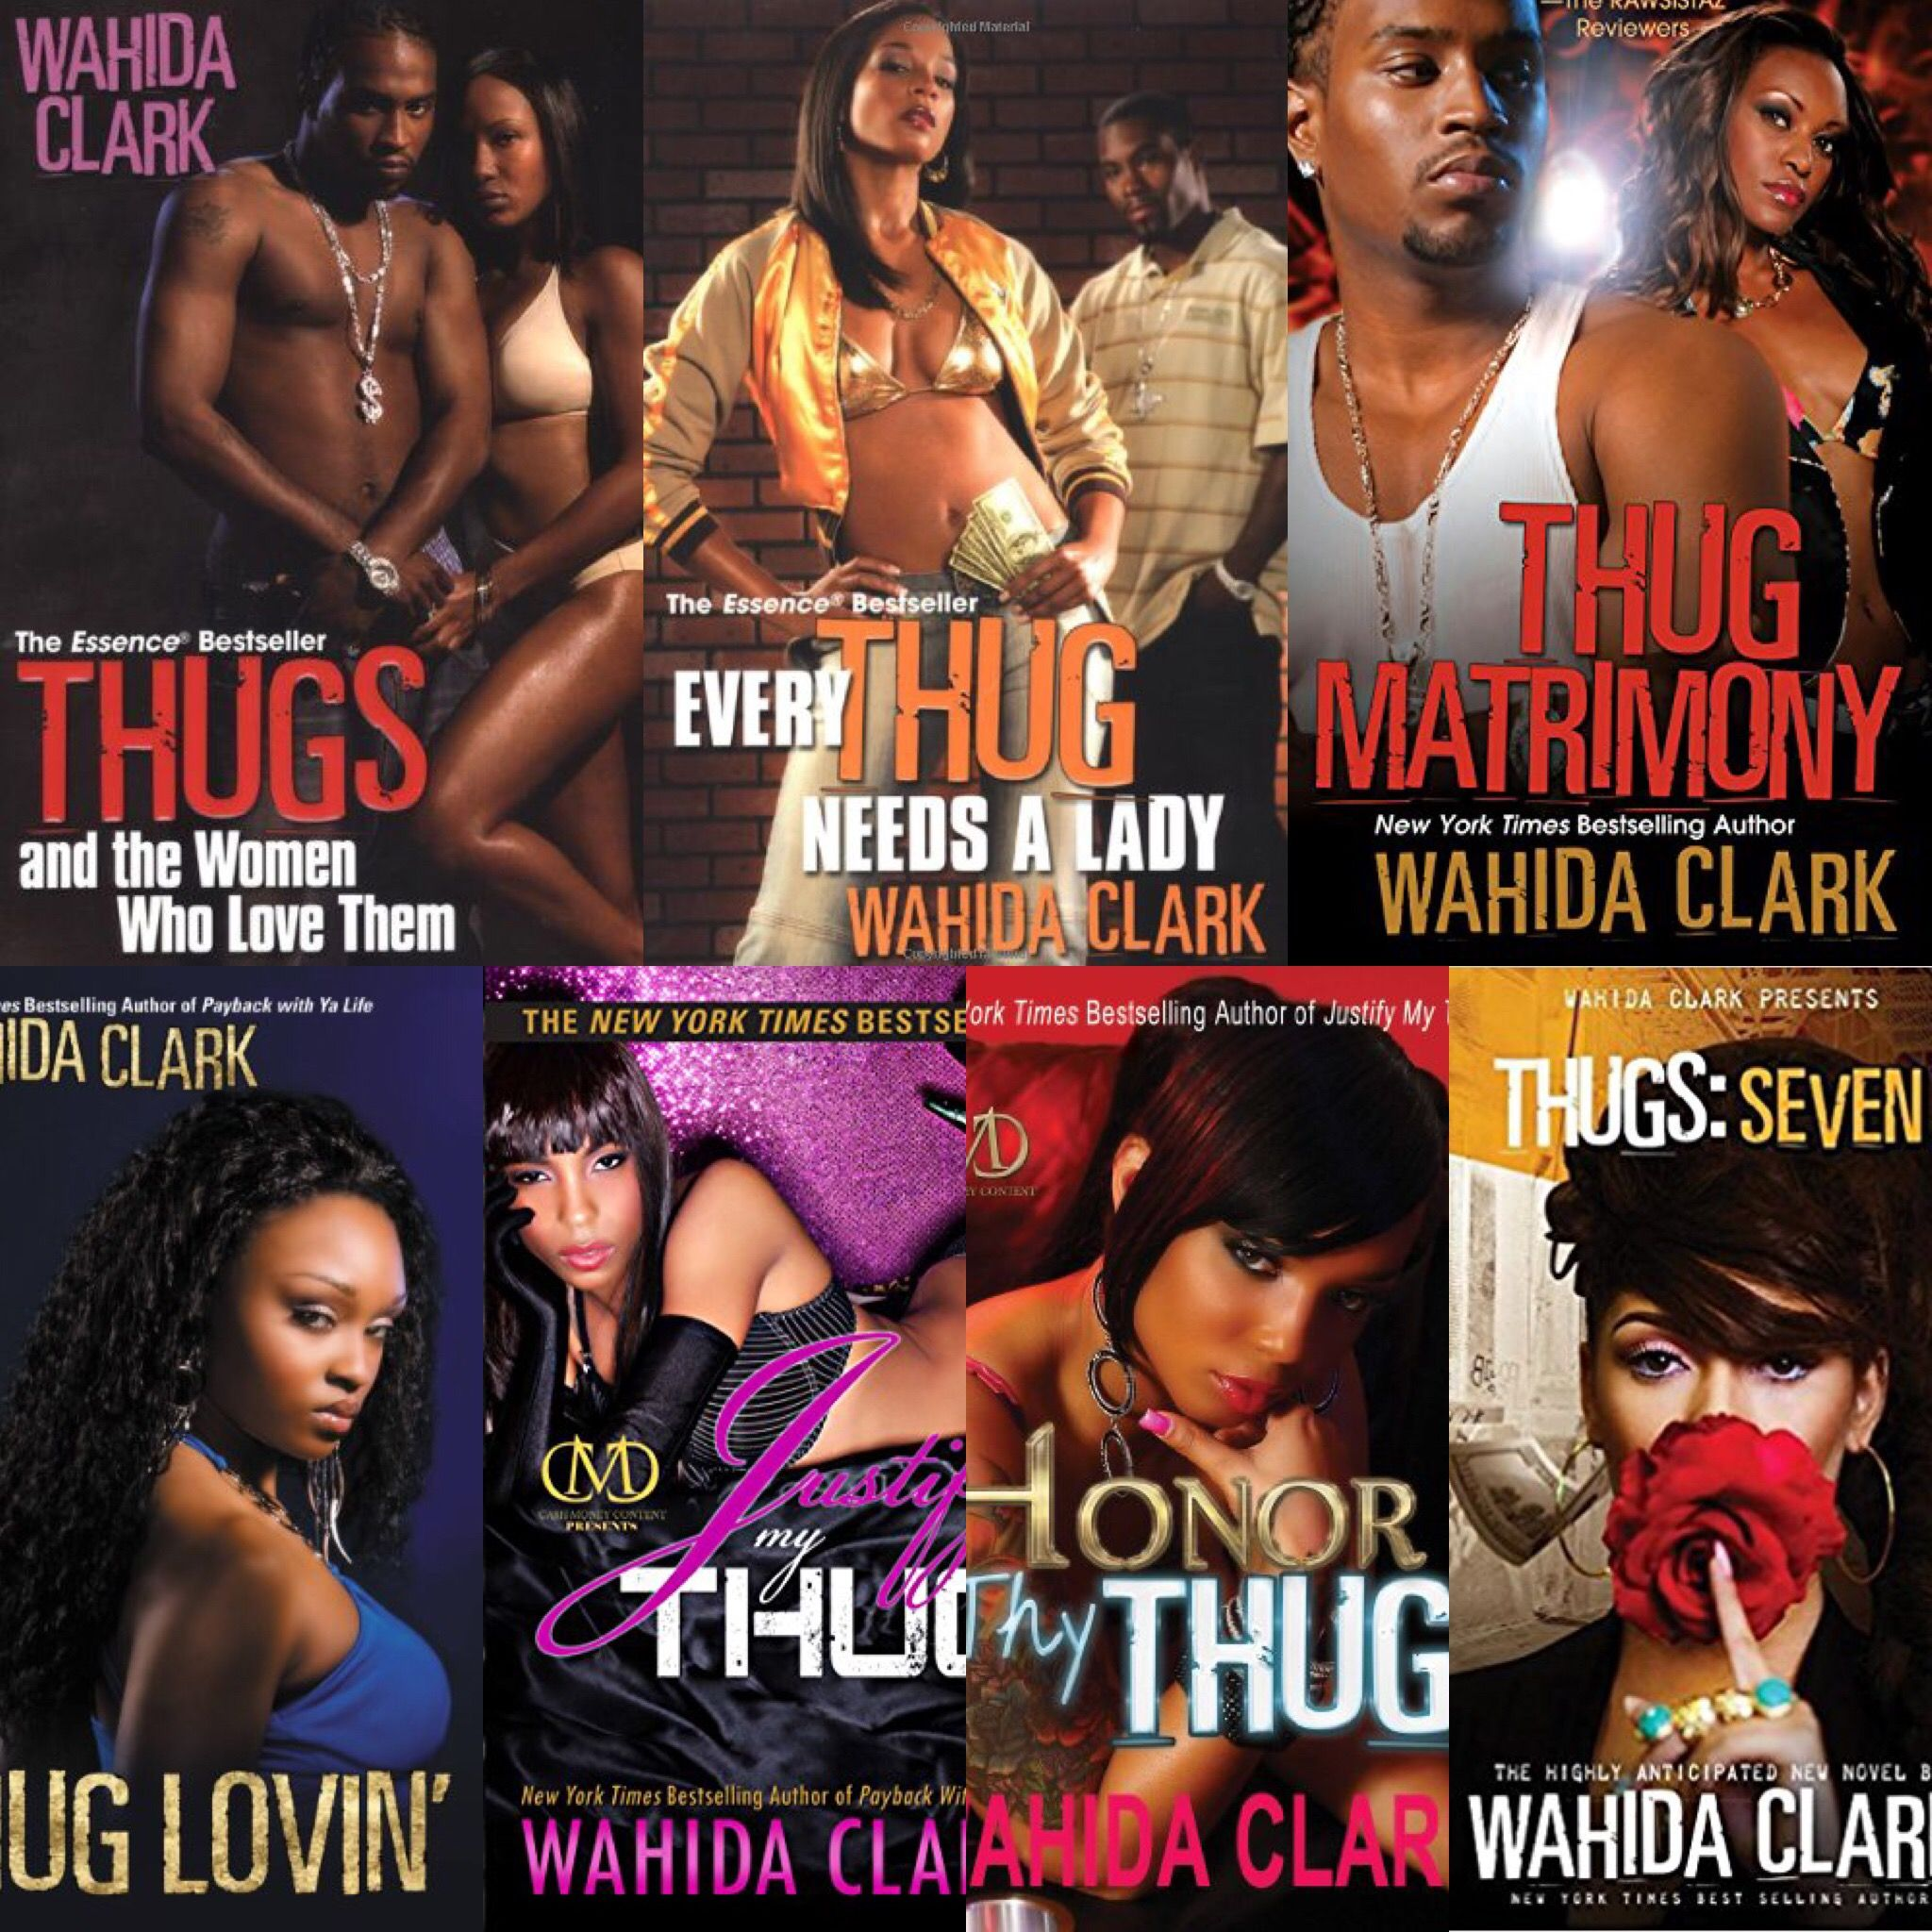 Thug Series: Wahida Clark | Music book, Bestselling author, Book worms